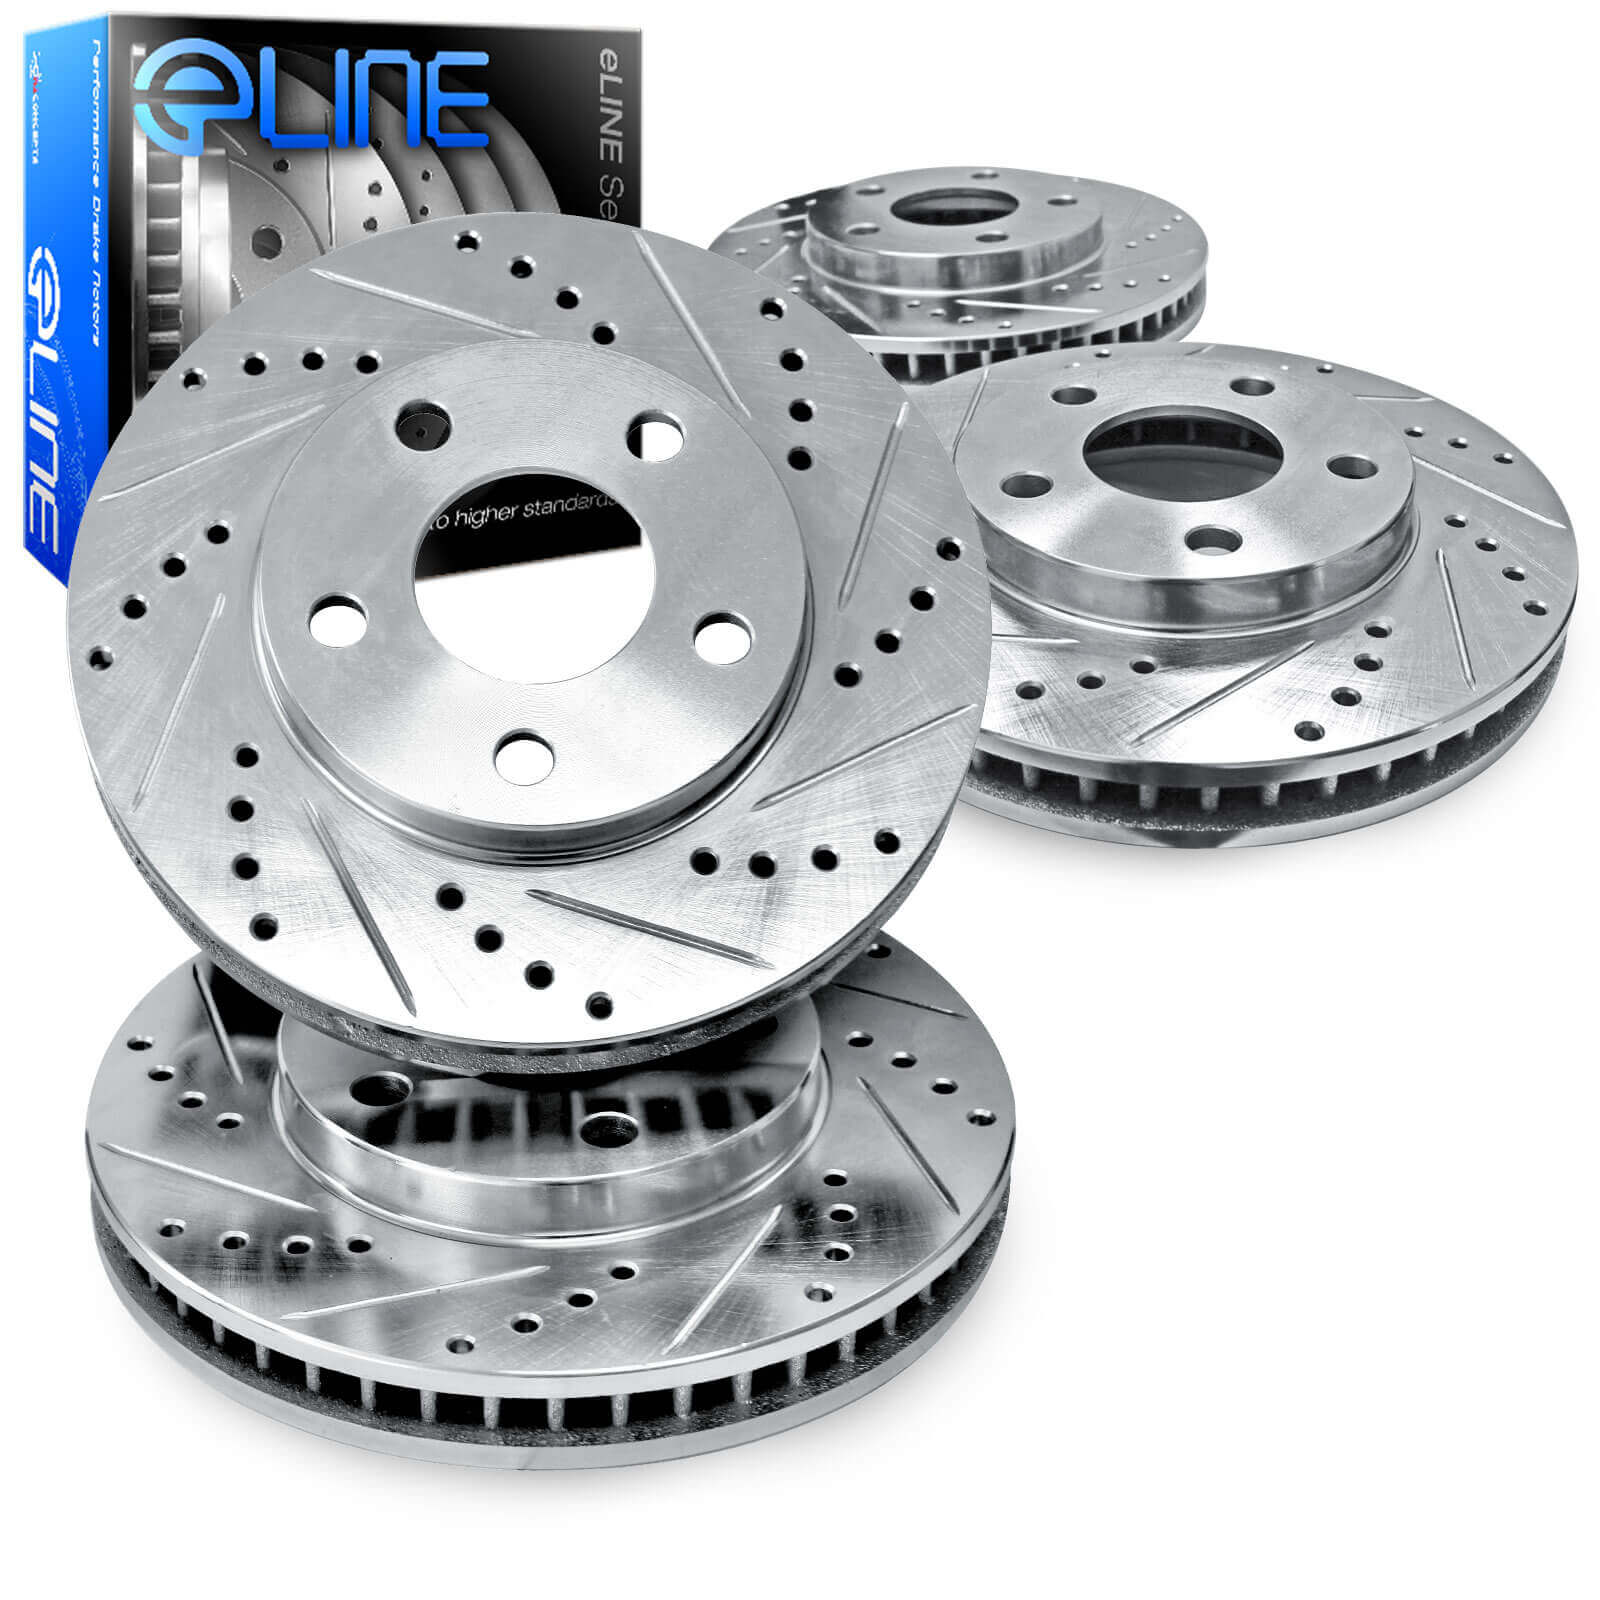 eLINE-Series - Drilled and Slotted rotor